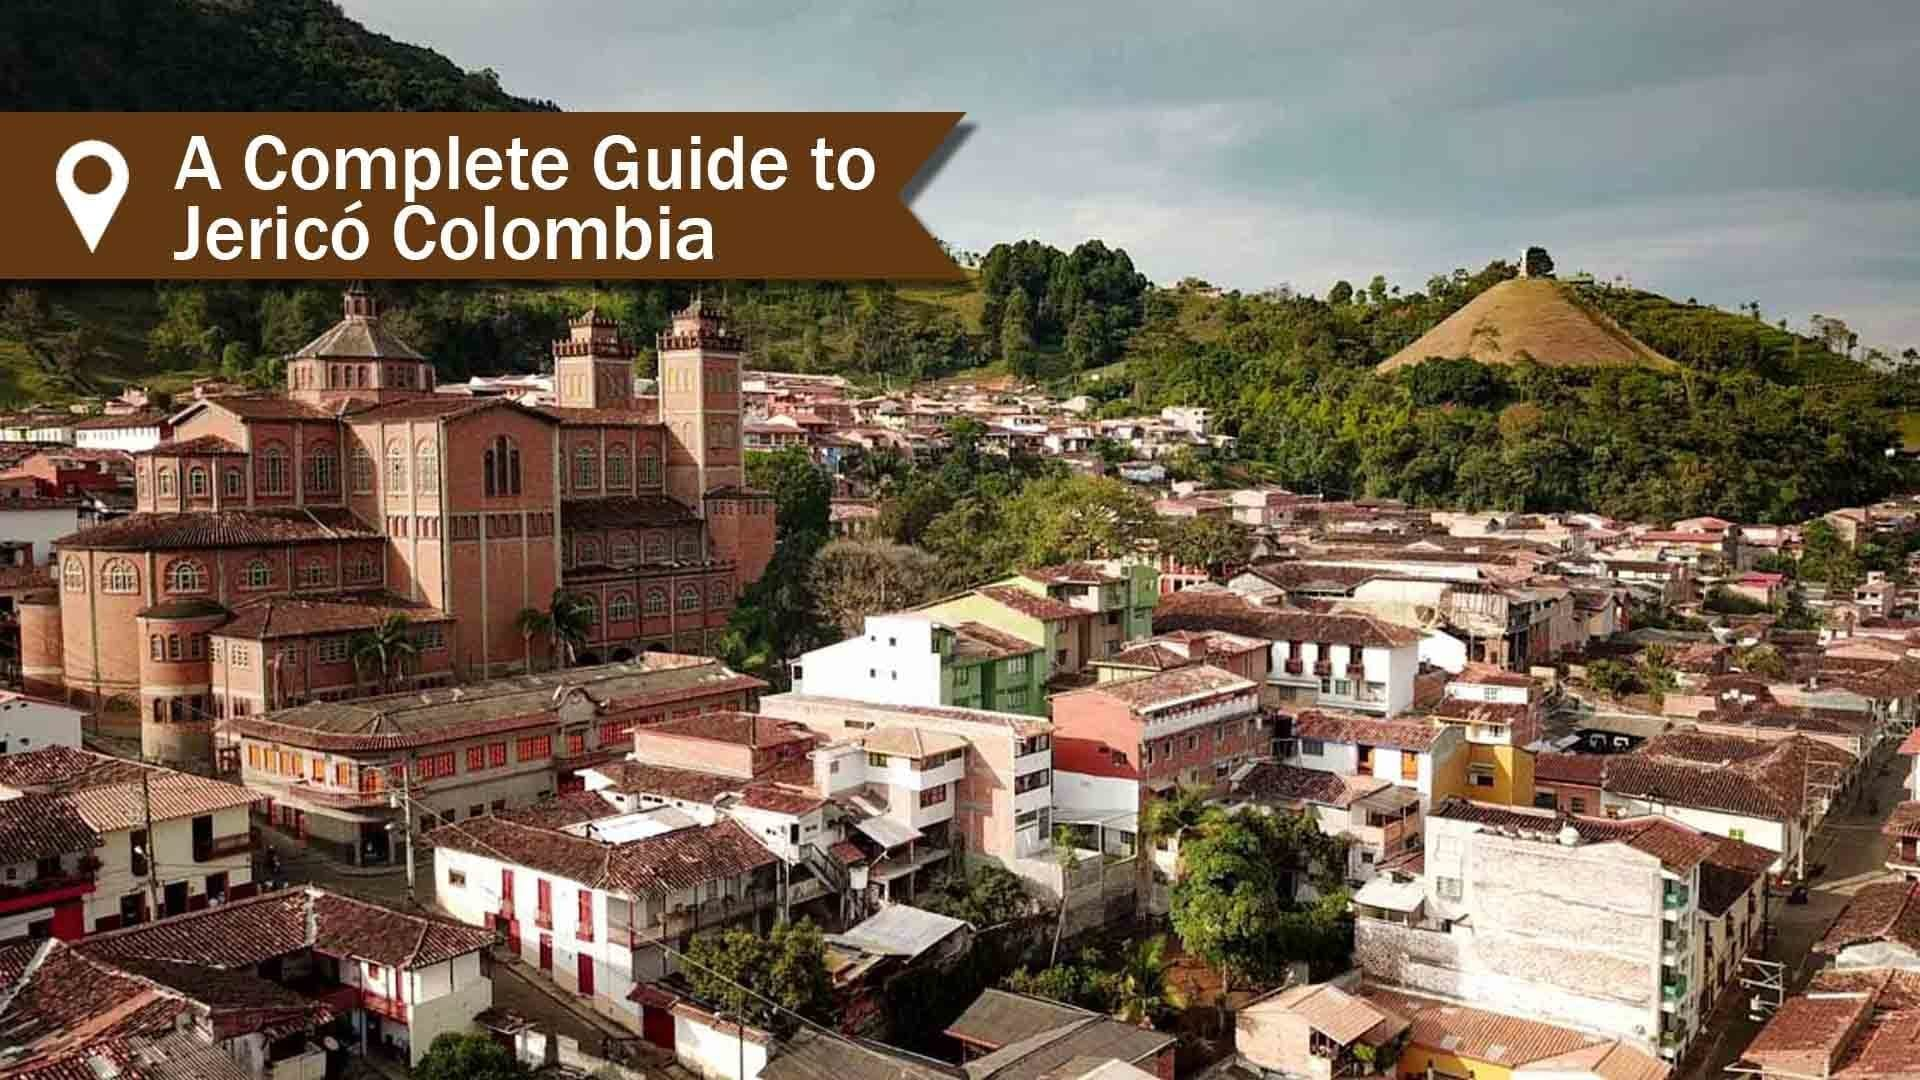 A Complete Guide to Jerico Colombia - Travel Life Experiences